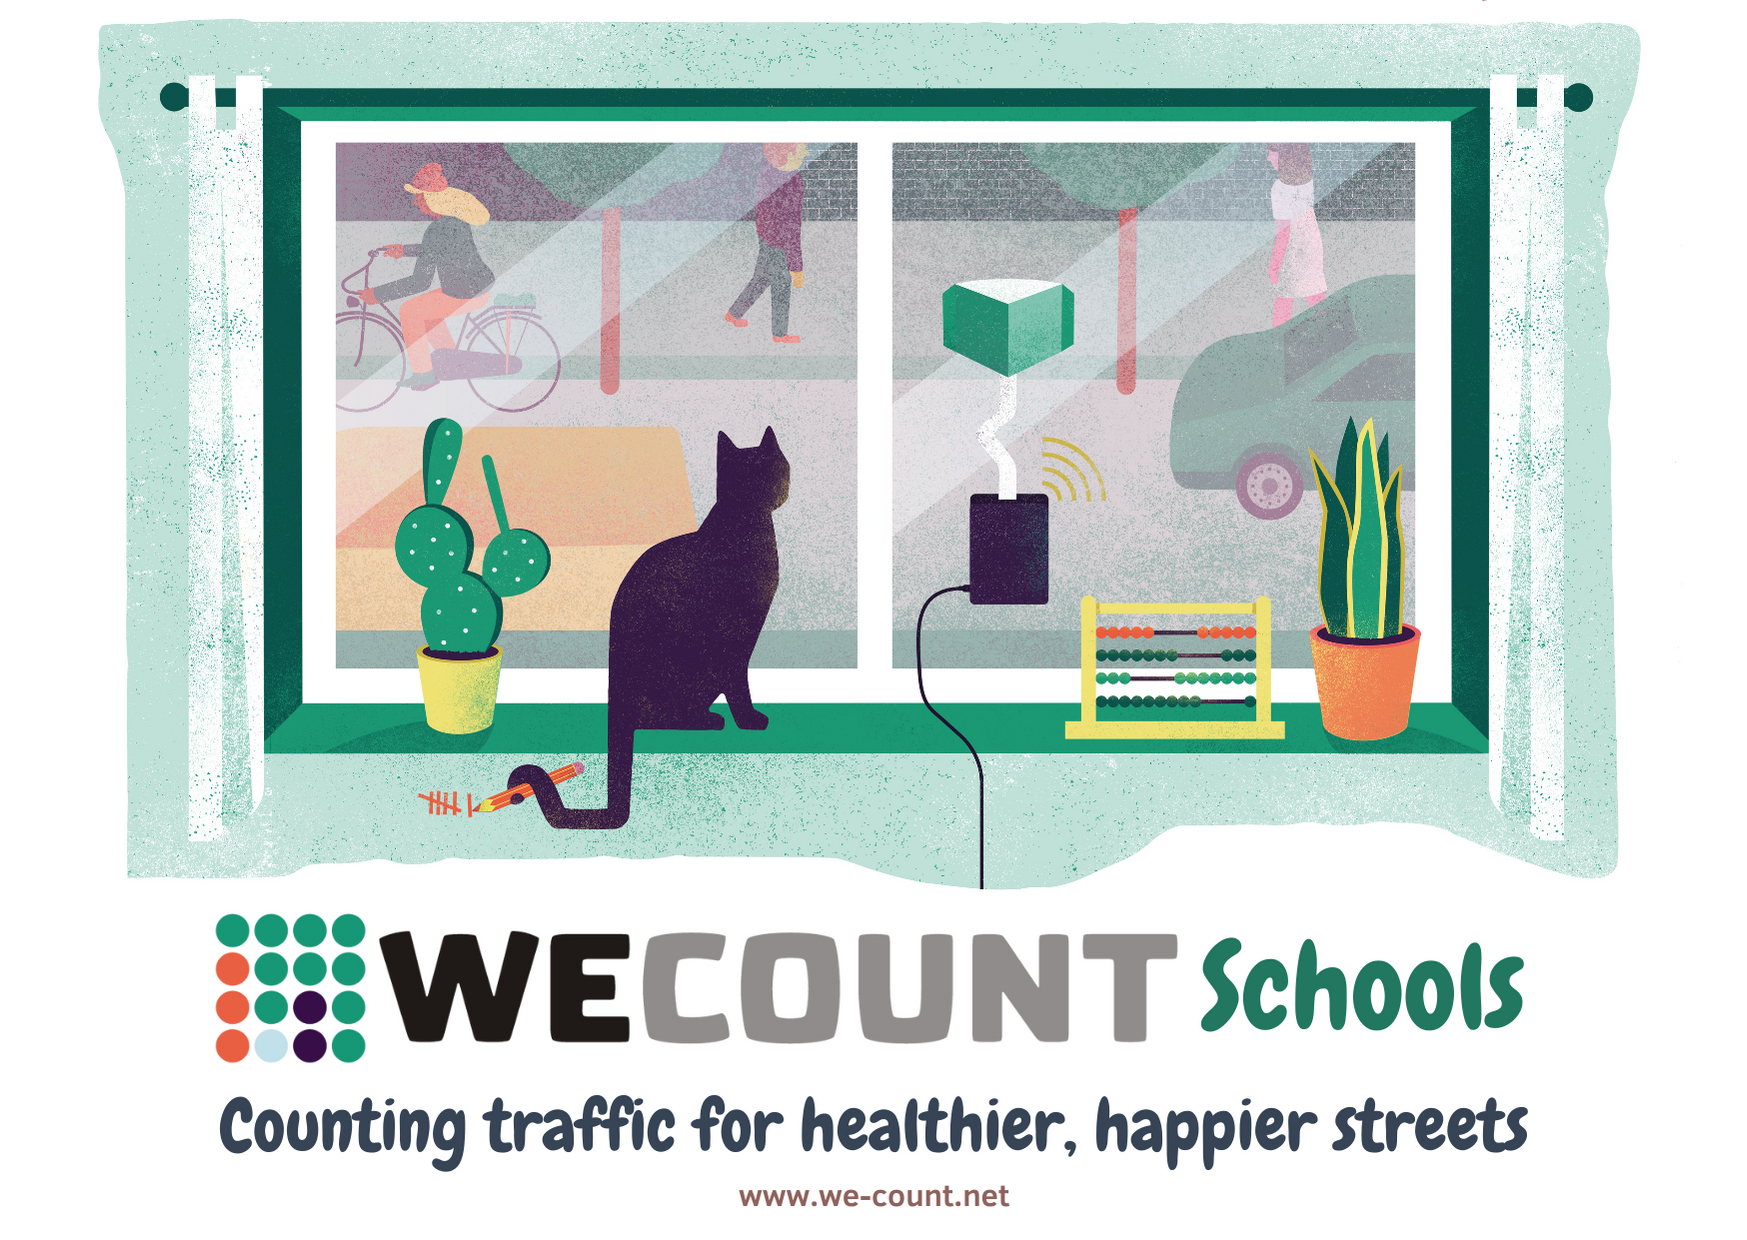 WeCount Schools – explore air pollution and traffic in your local area